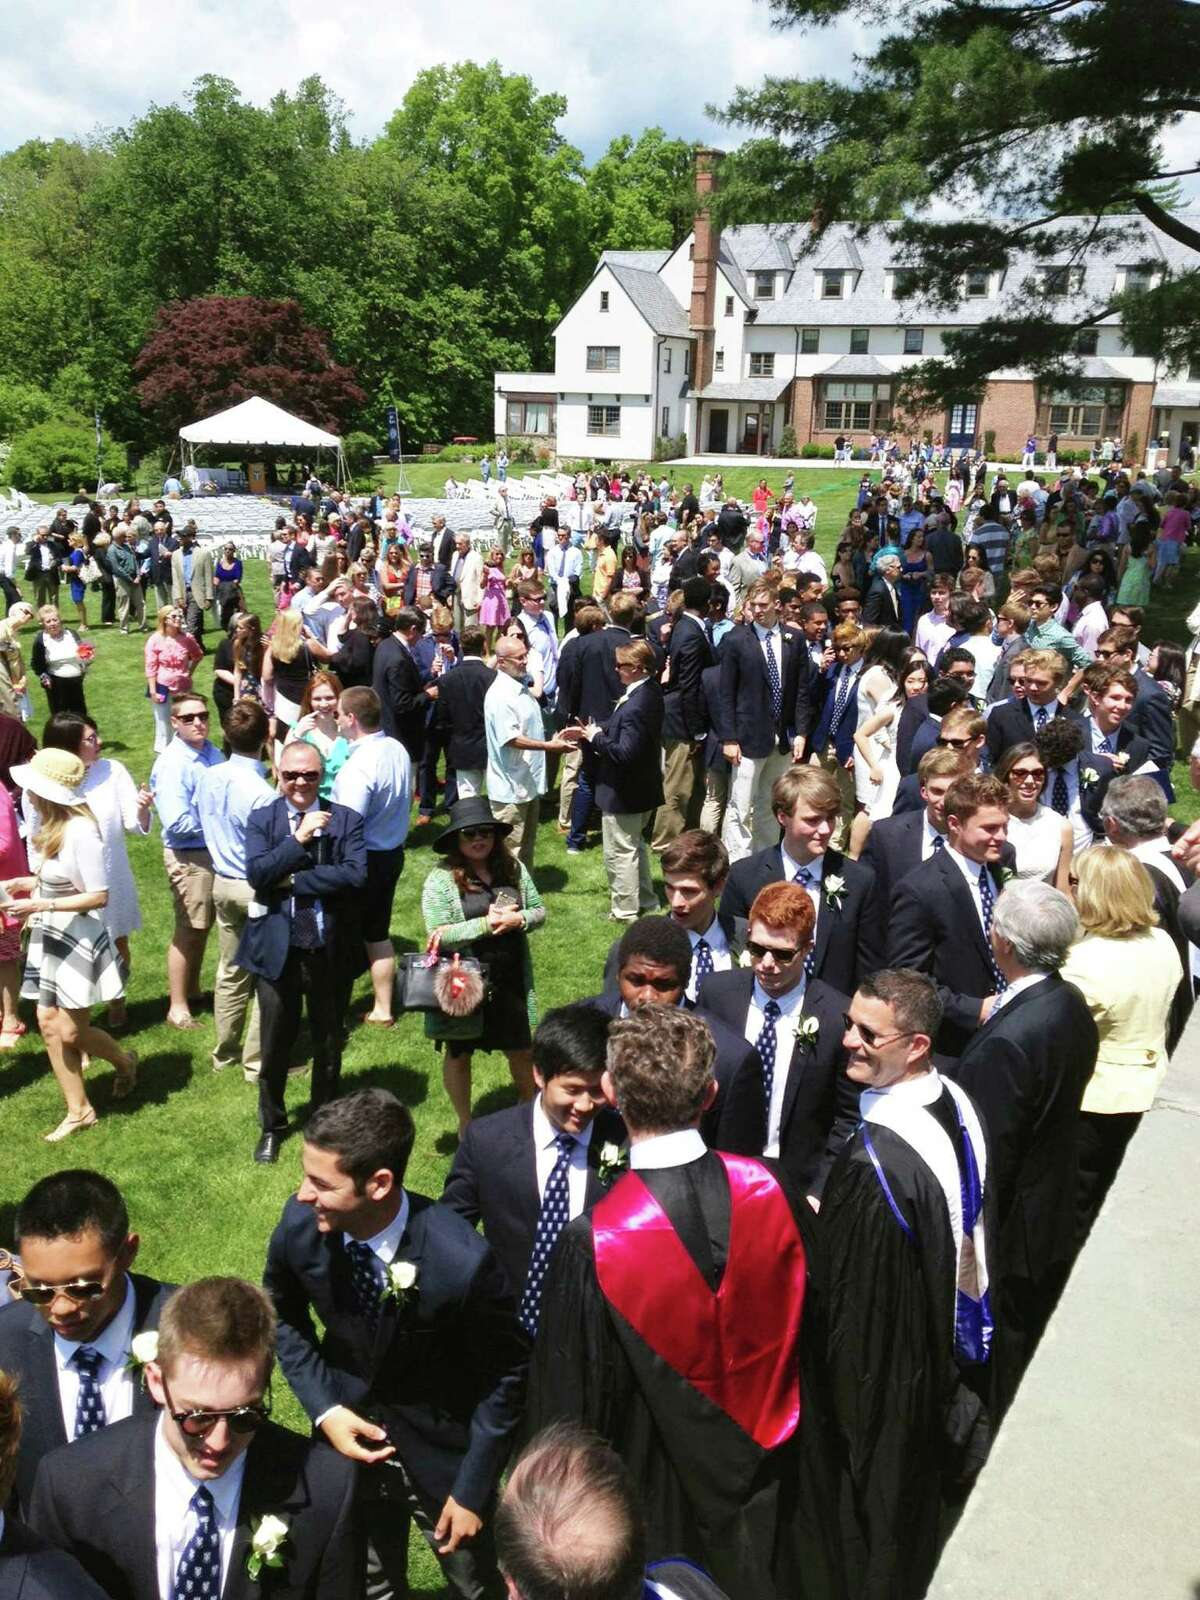 Canterbury School's May 22, 2015 graduation ceremony in New Milford.